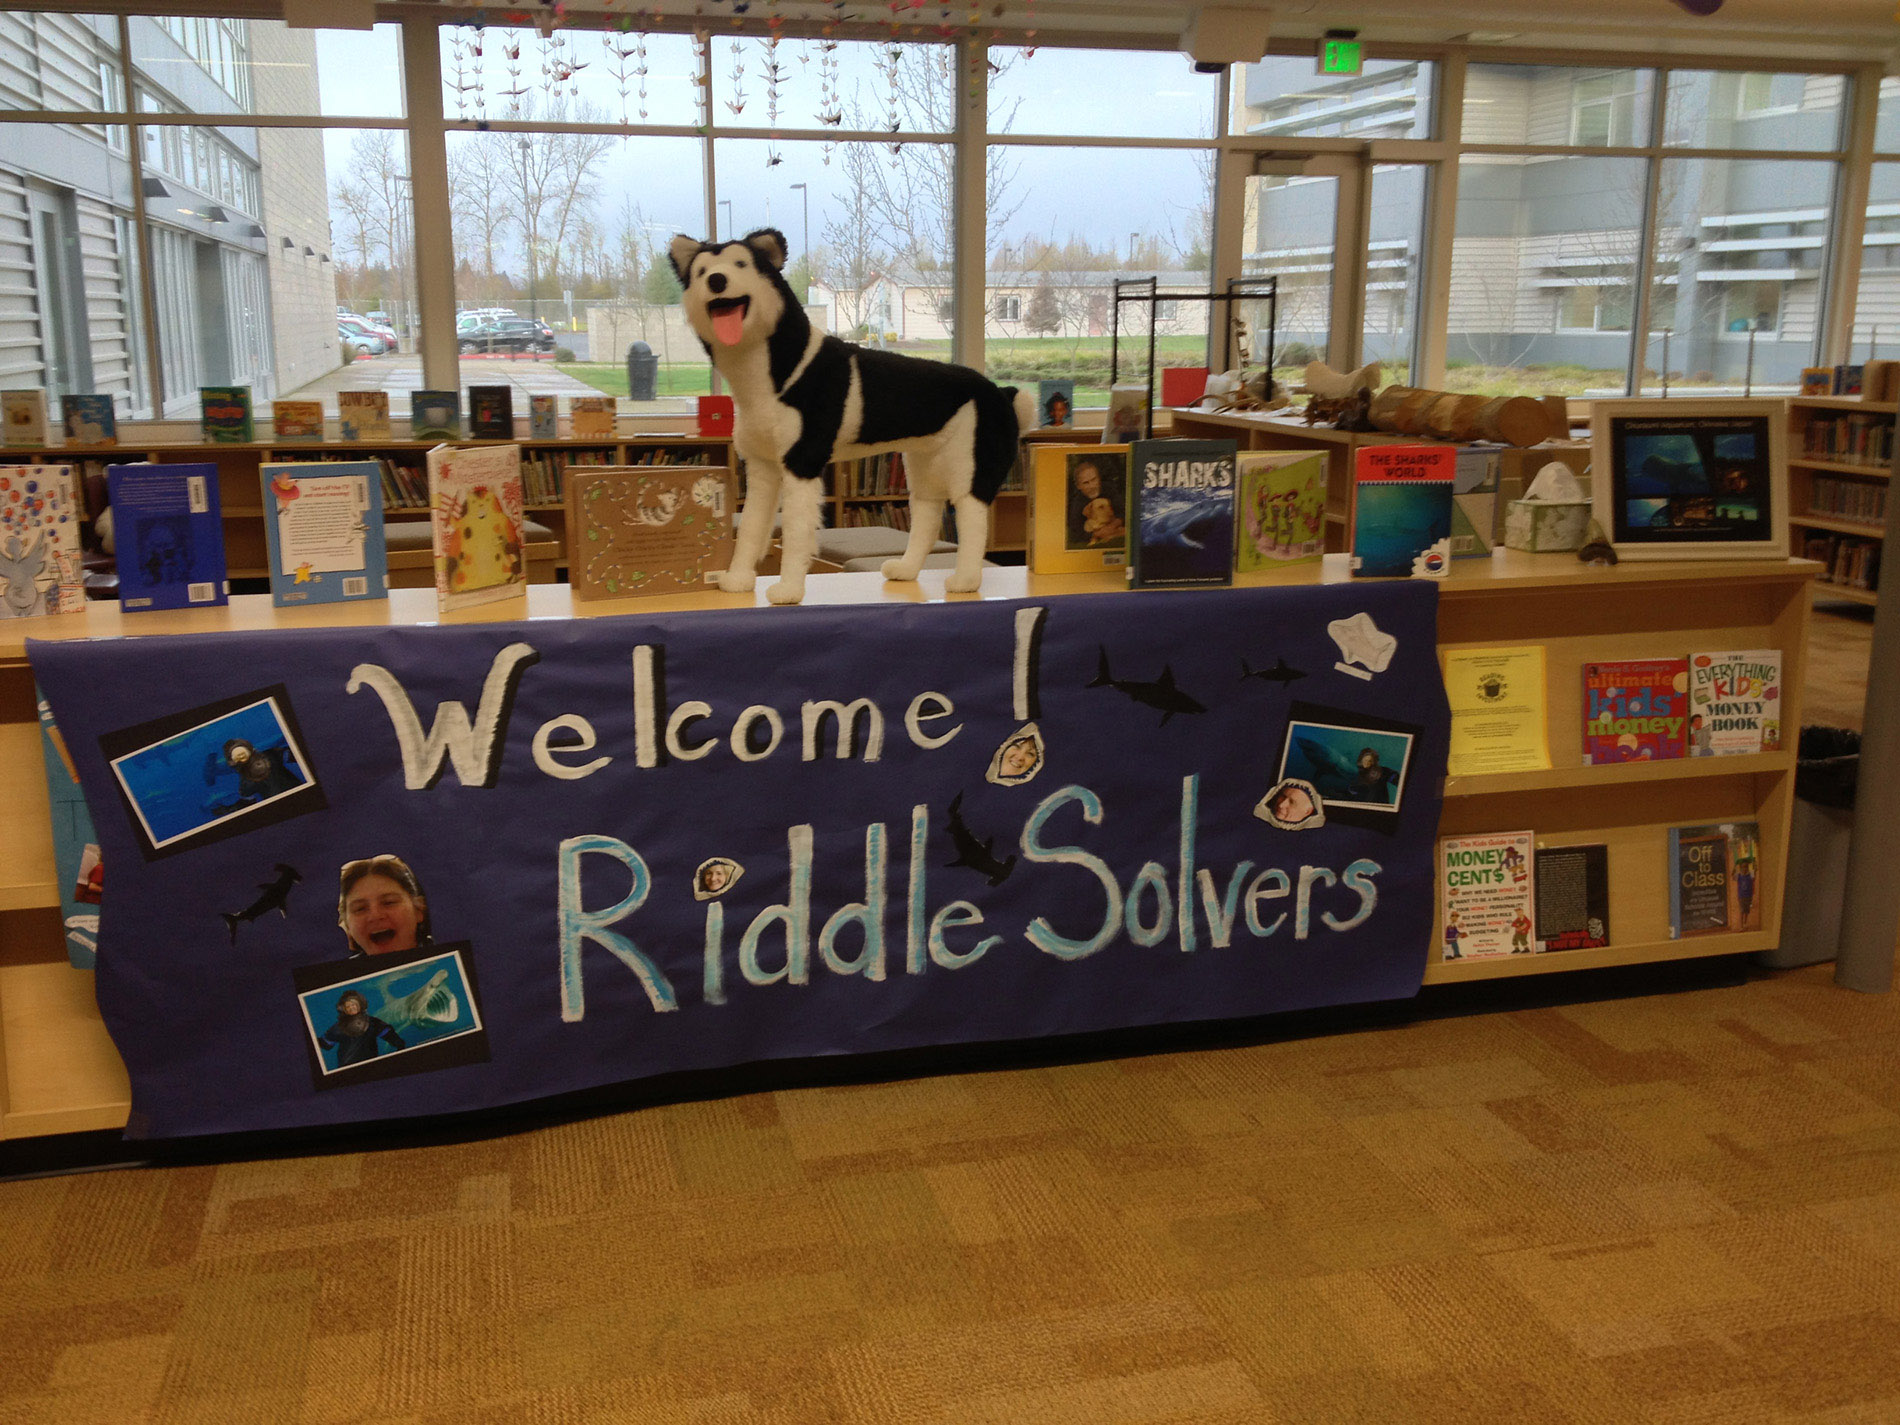 Welcome Riddle Solvers